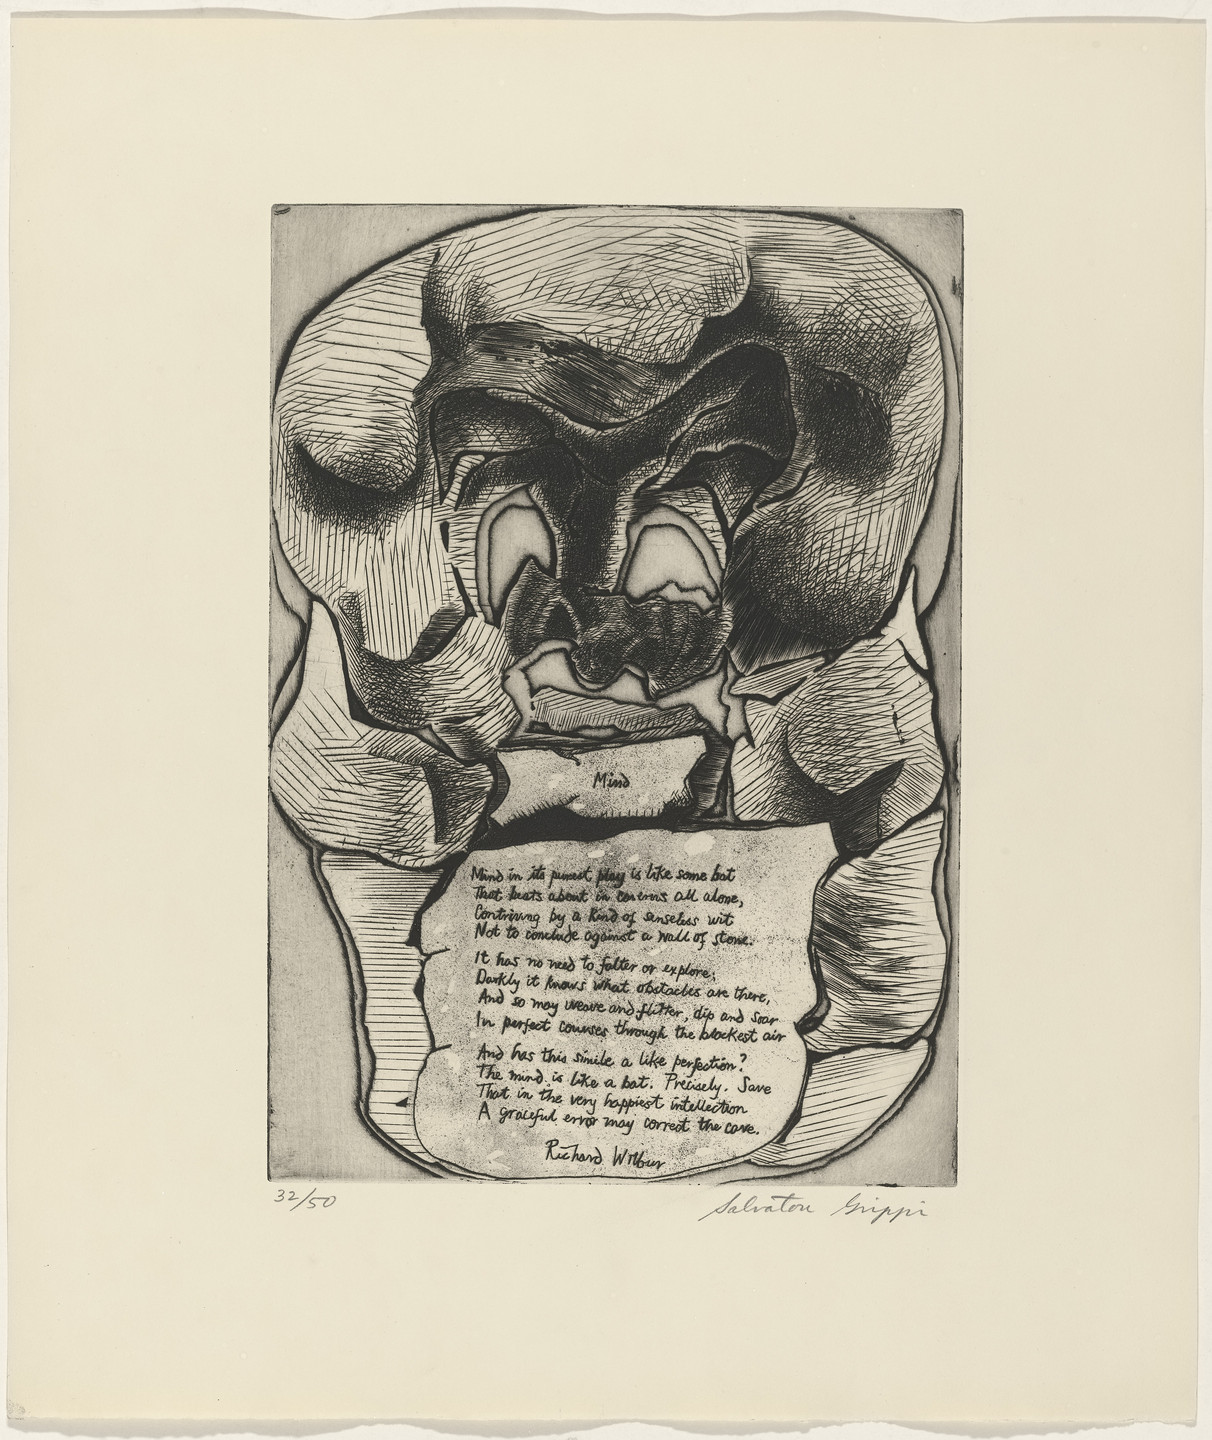 Salvatore Grippi, Richard Wilbur. In-text plate (folio 10) from 21 Etchings and Poems. 1960